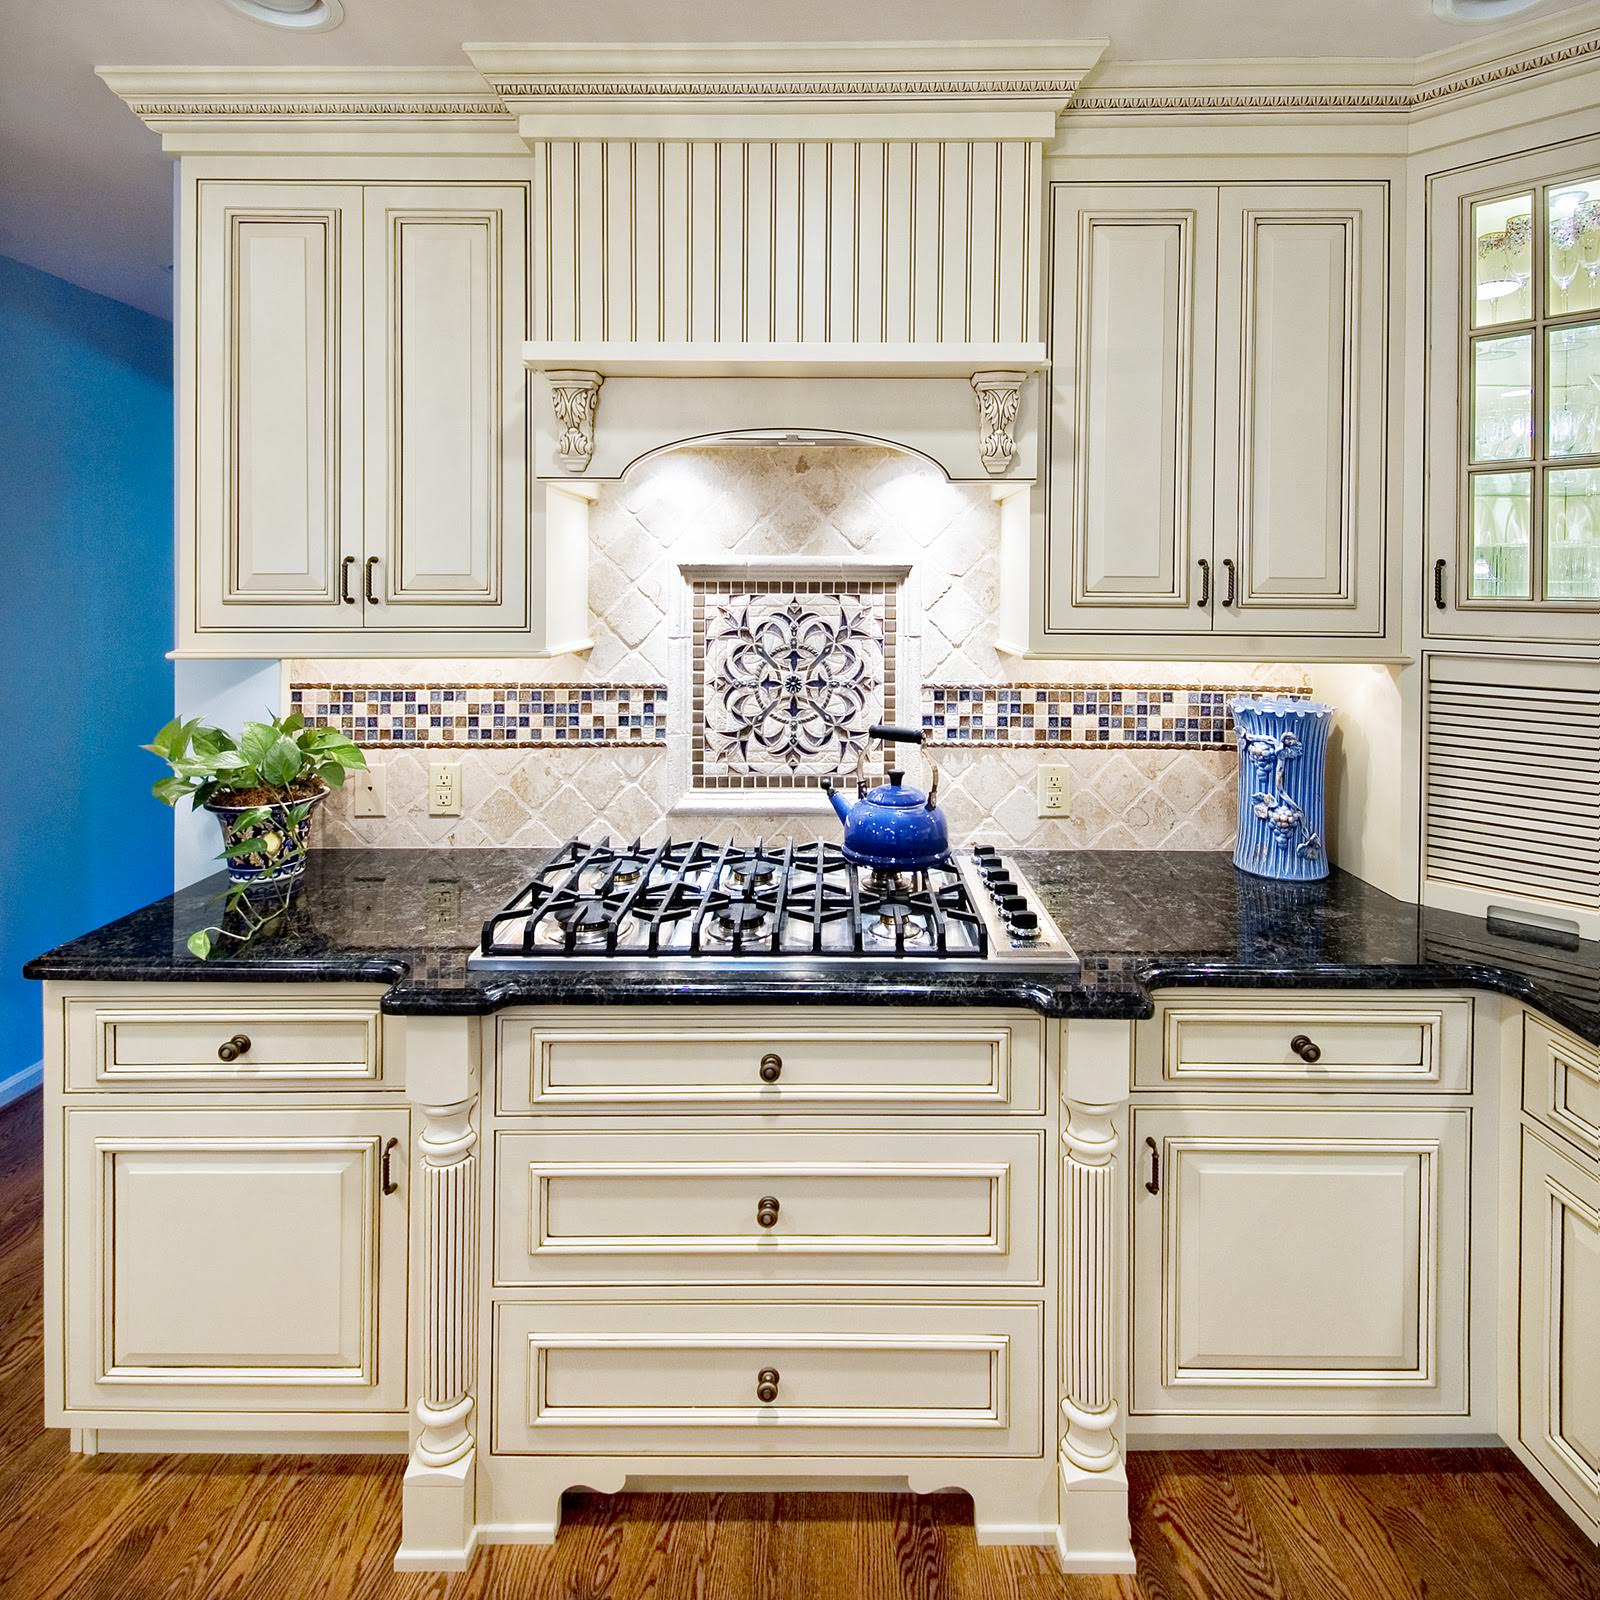 Discount Granite Countertops Denver  Quality Kitchen and